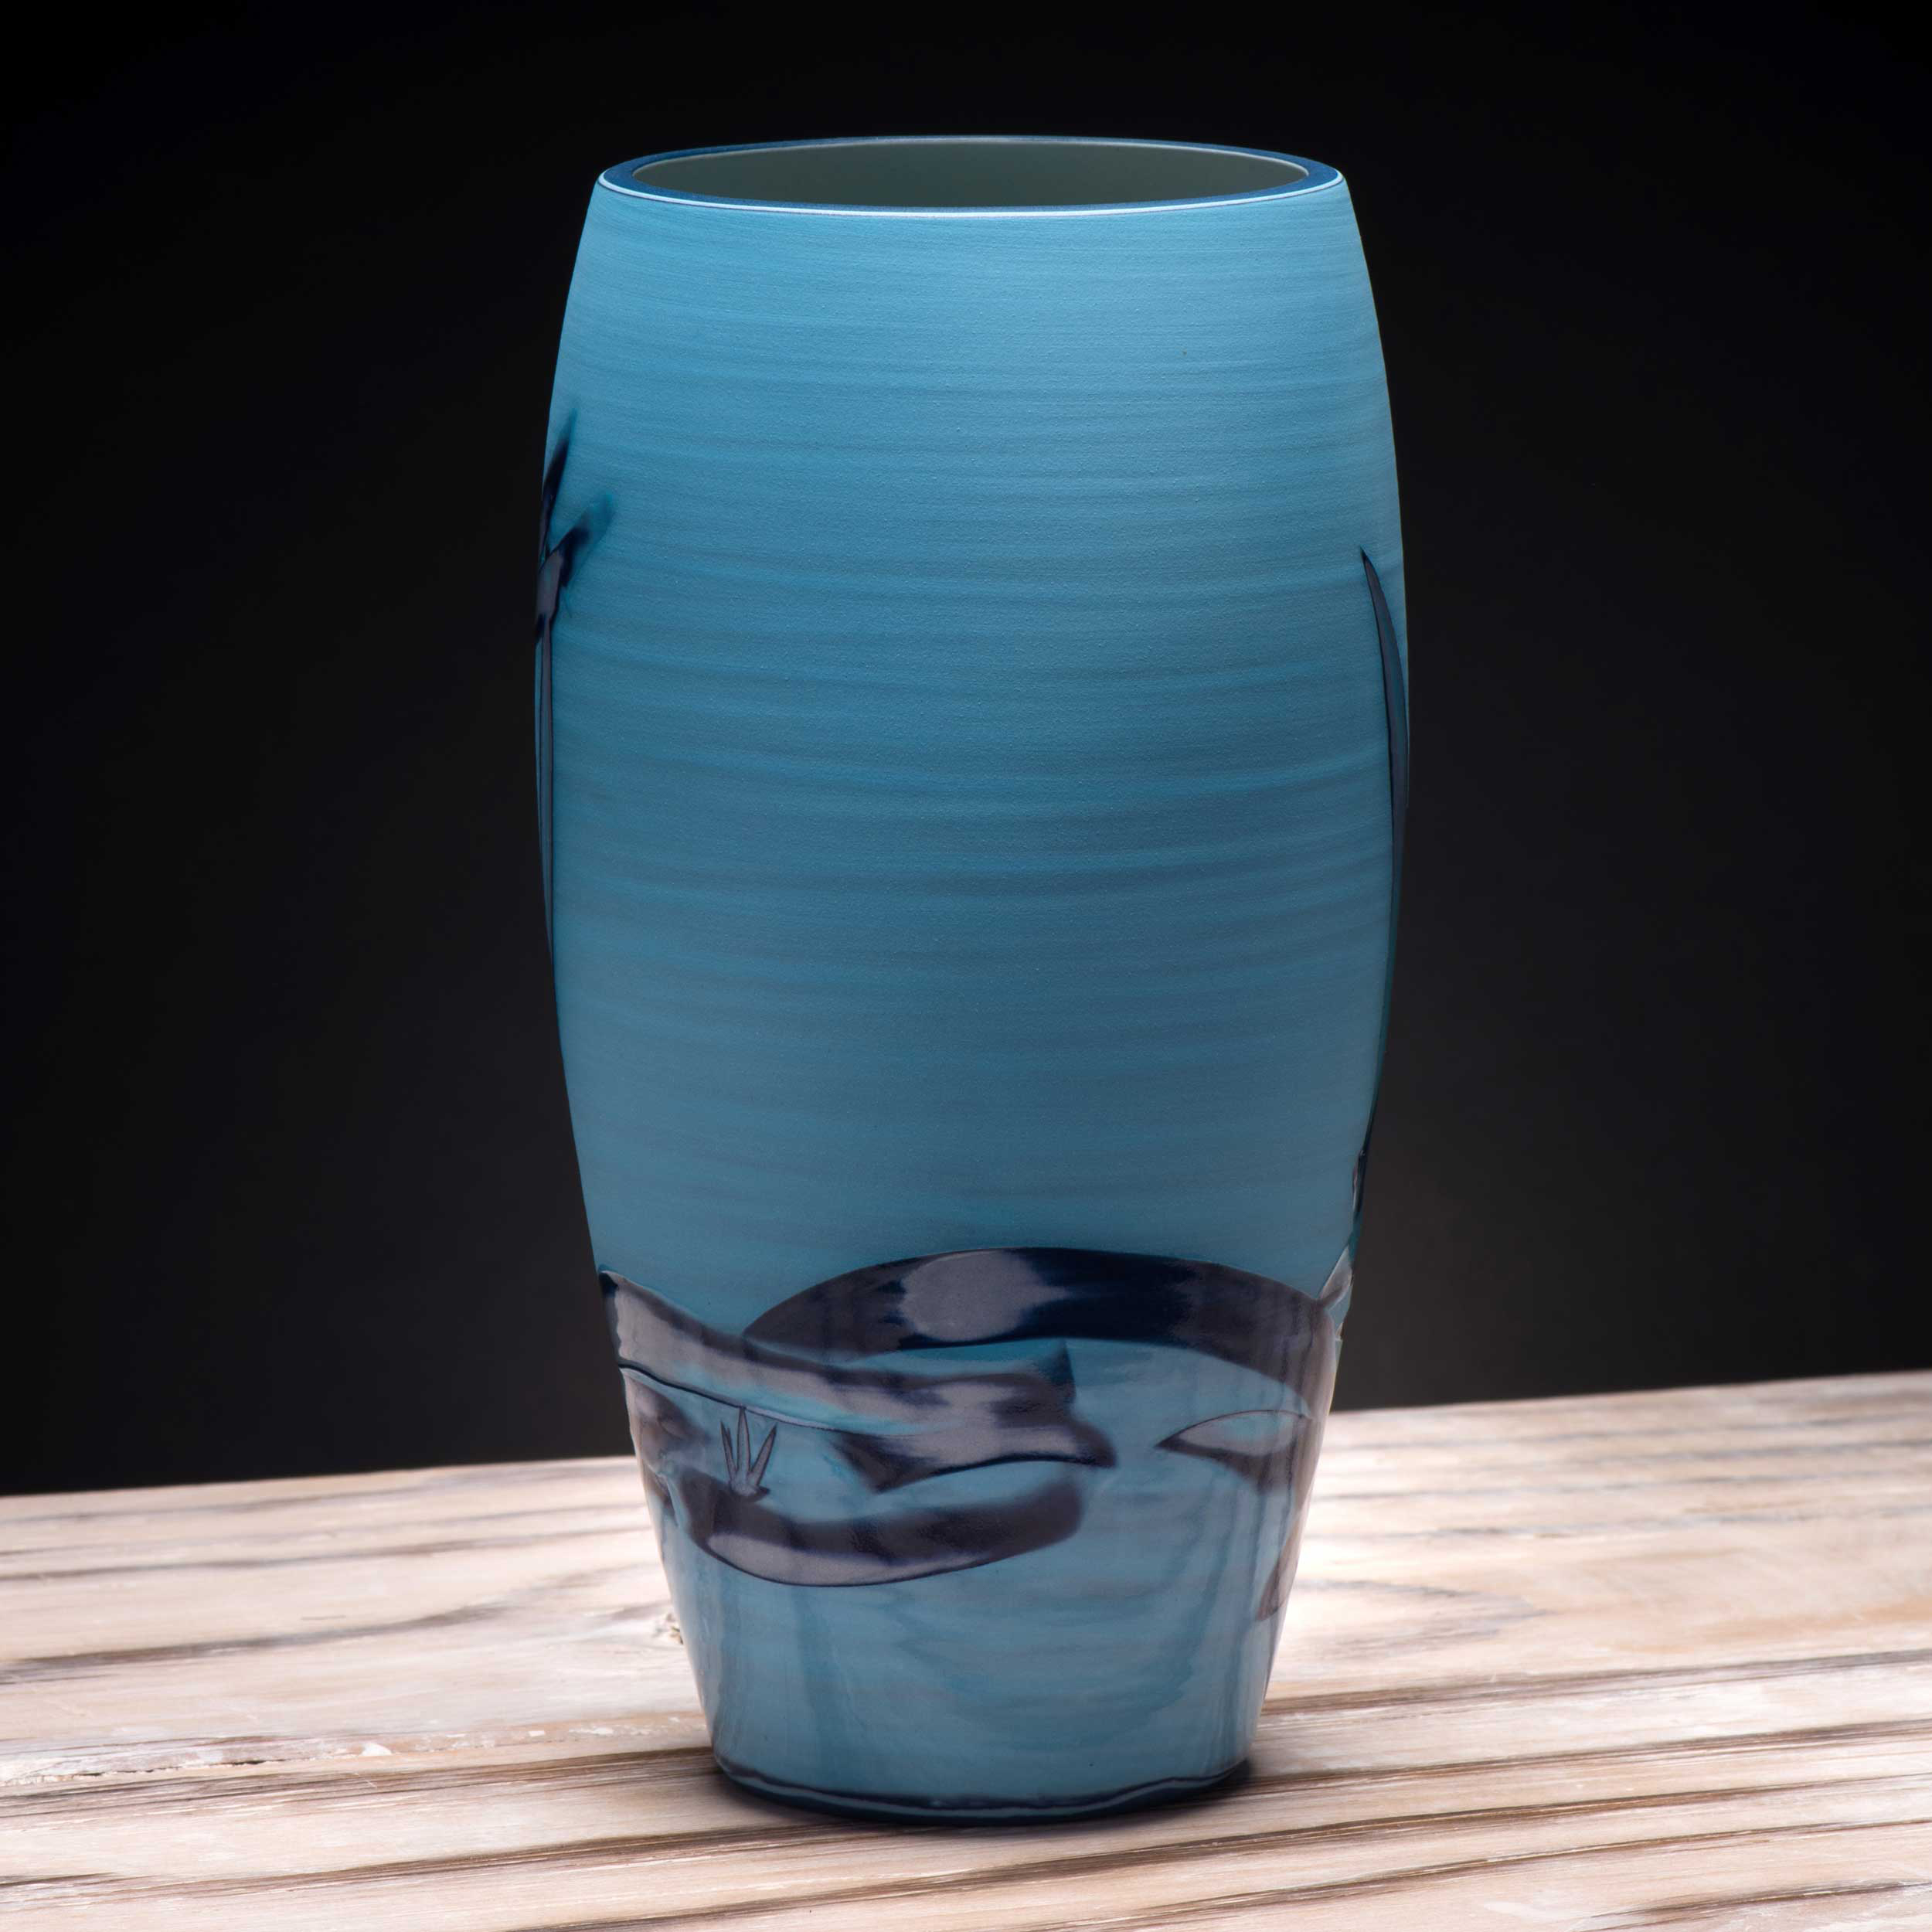 Tropical Sea Ceramic Vase by Rowena Gilbert in Turquoise Electri